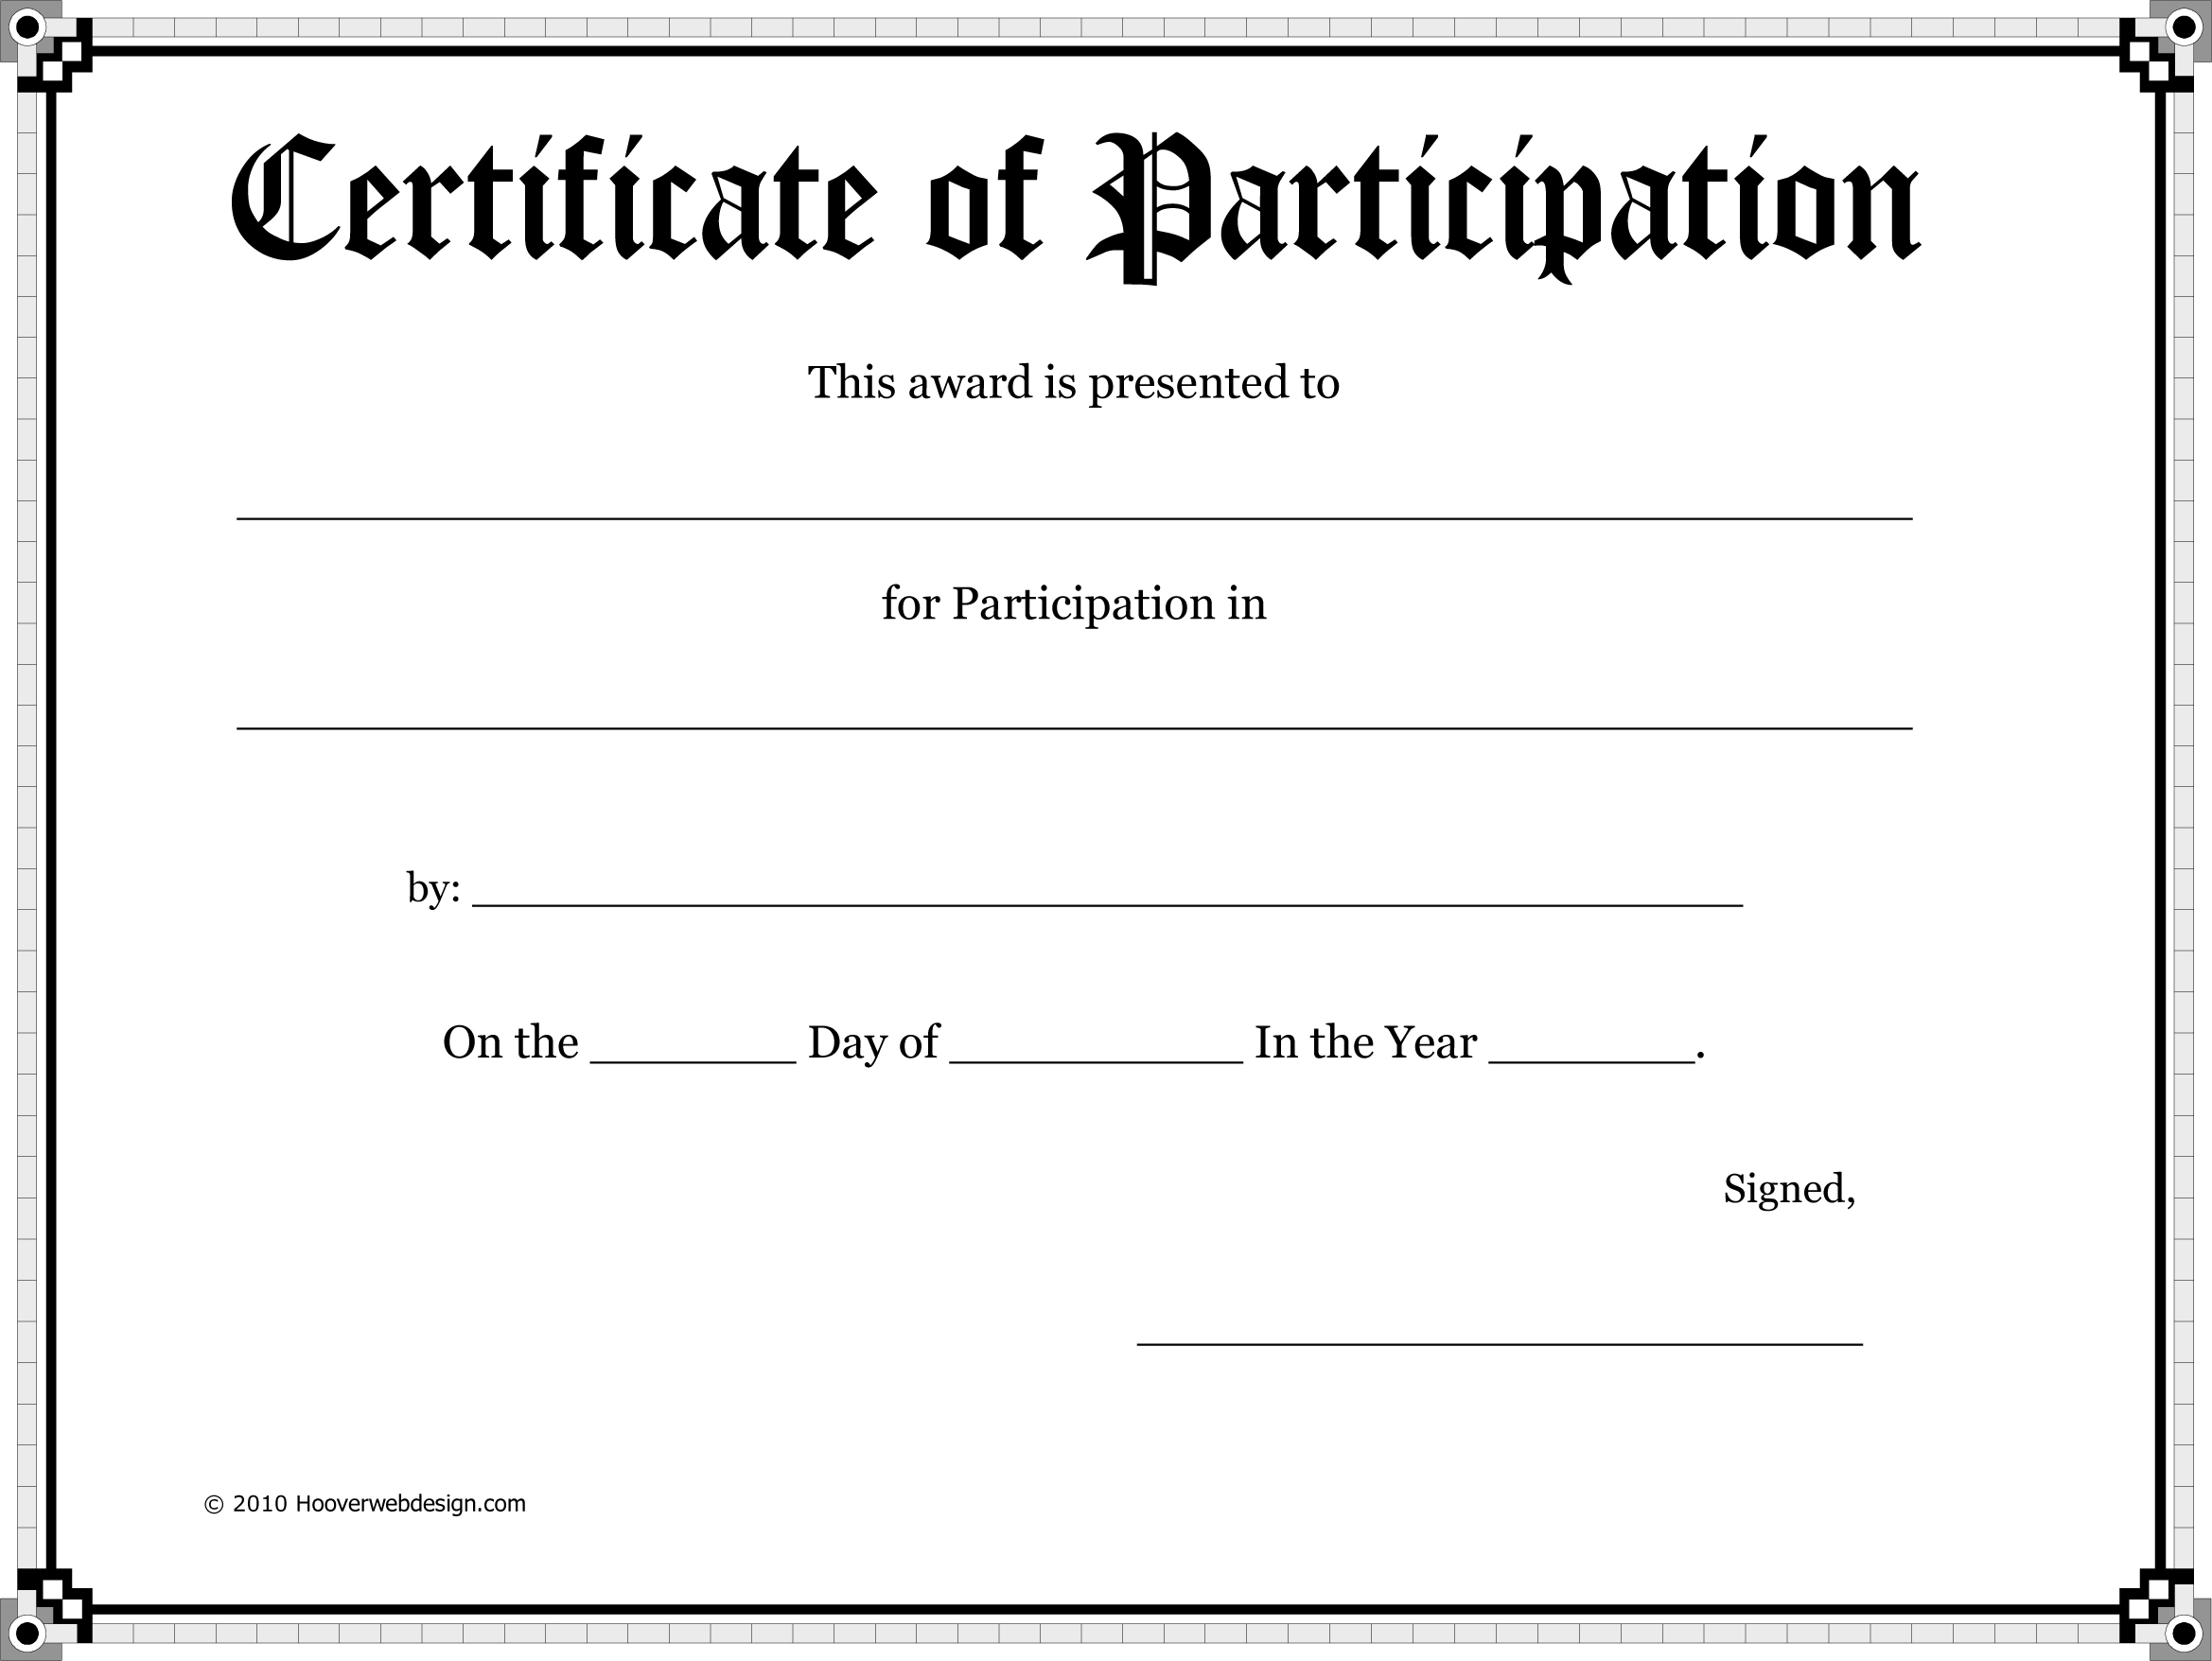 Doc500353 Certificate of Attendance Template Microsoft Word – Certificate of Attendance Template Microsoft Word